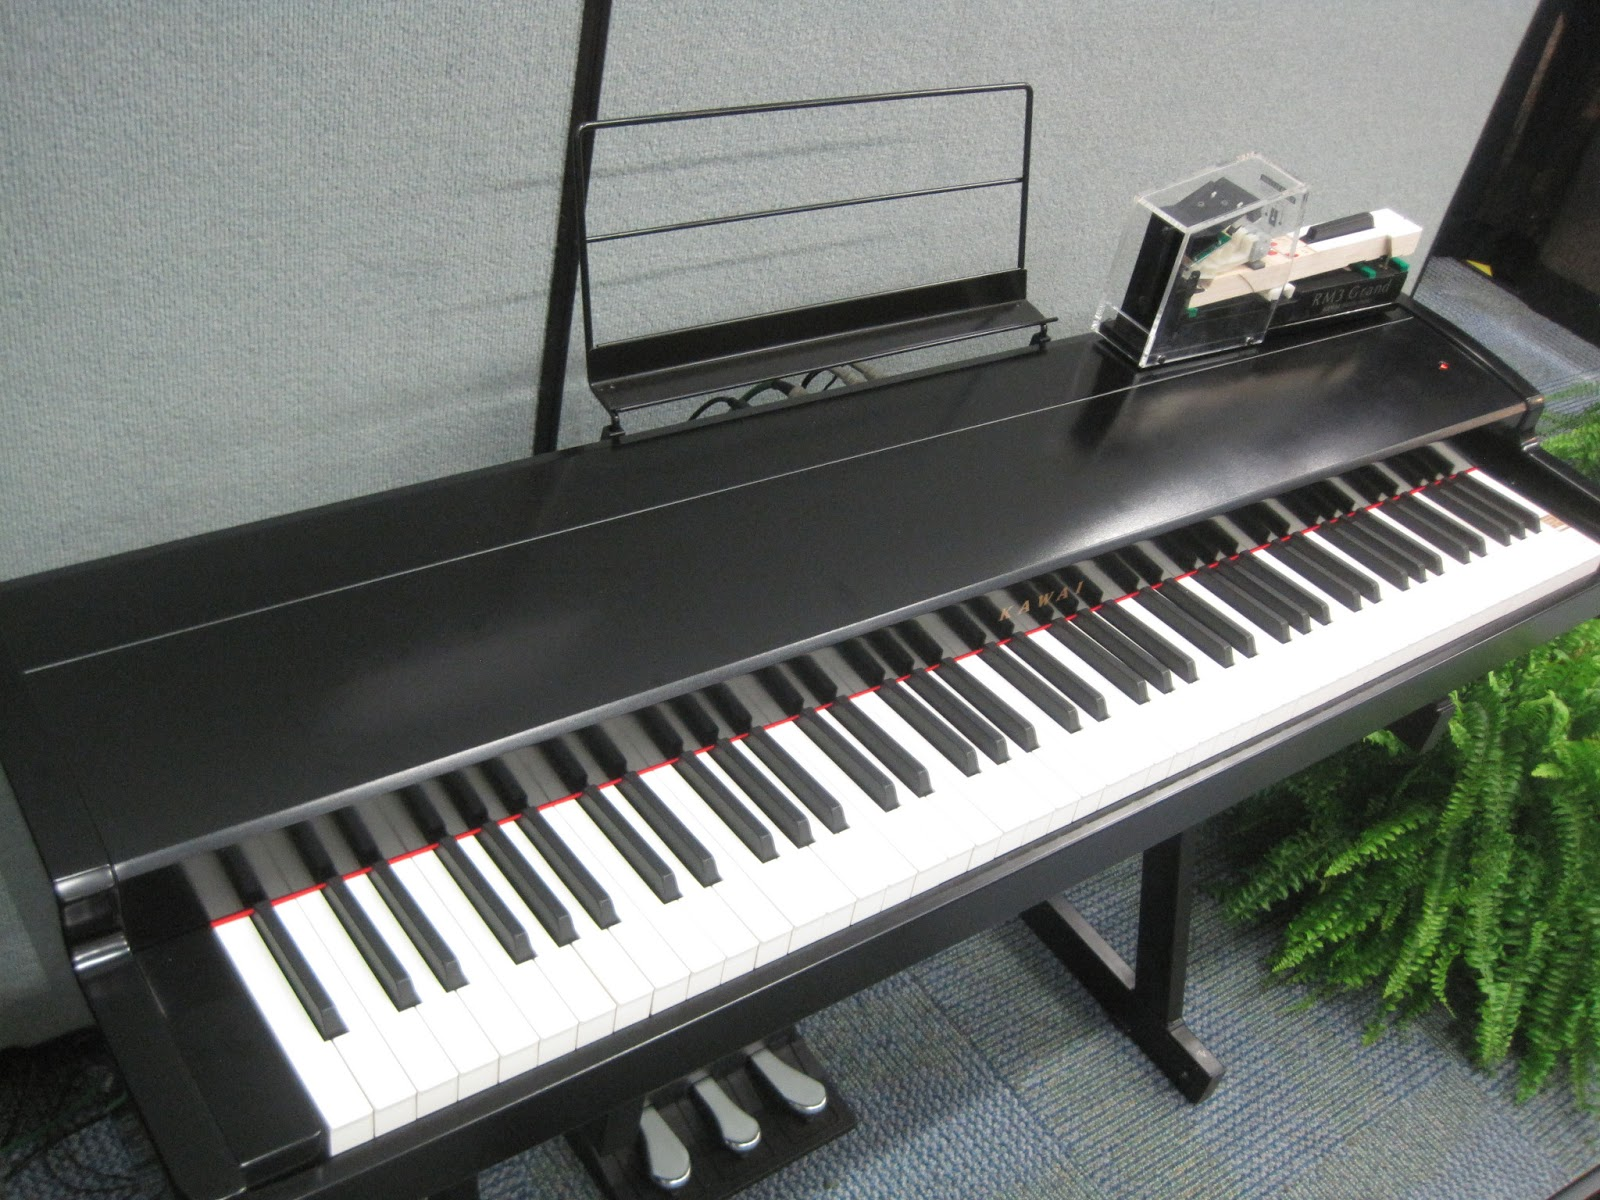 az piano reviews review kawai vpc1 piano controller recommended. Black Bedroom Furniture Sets. Home Design Ideas